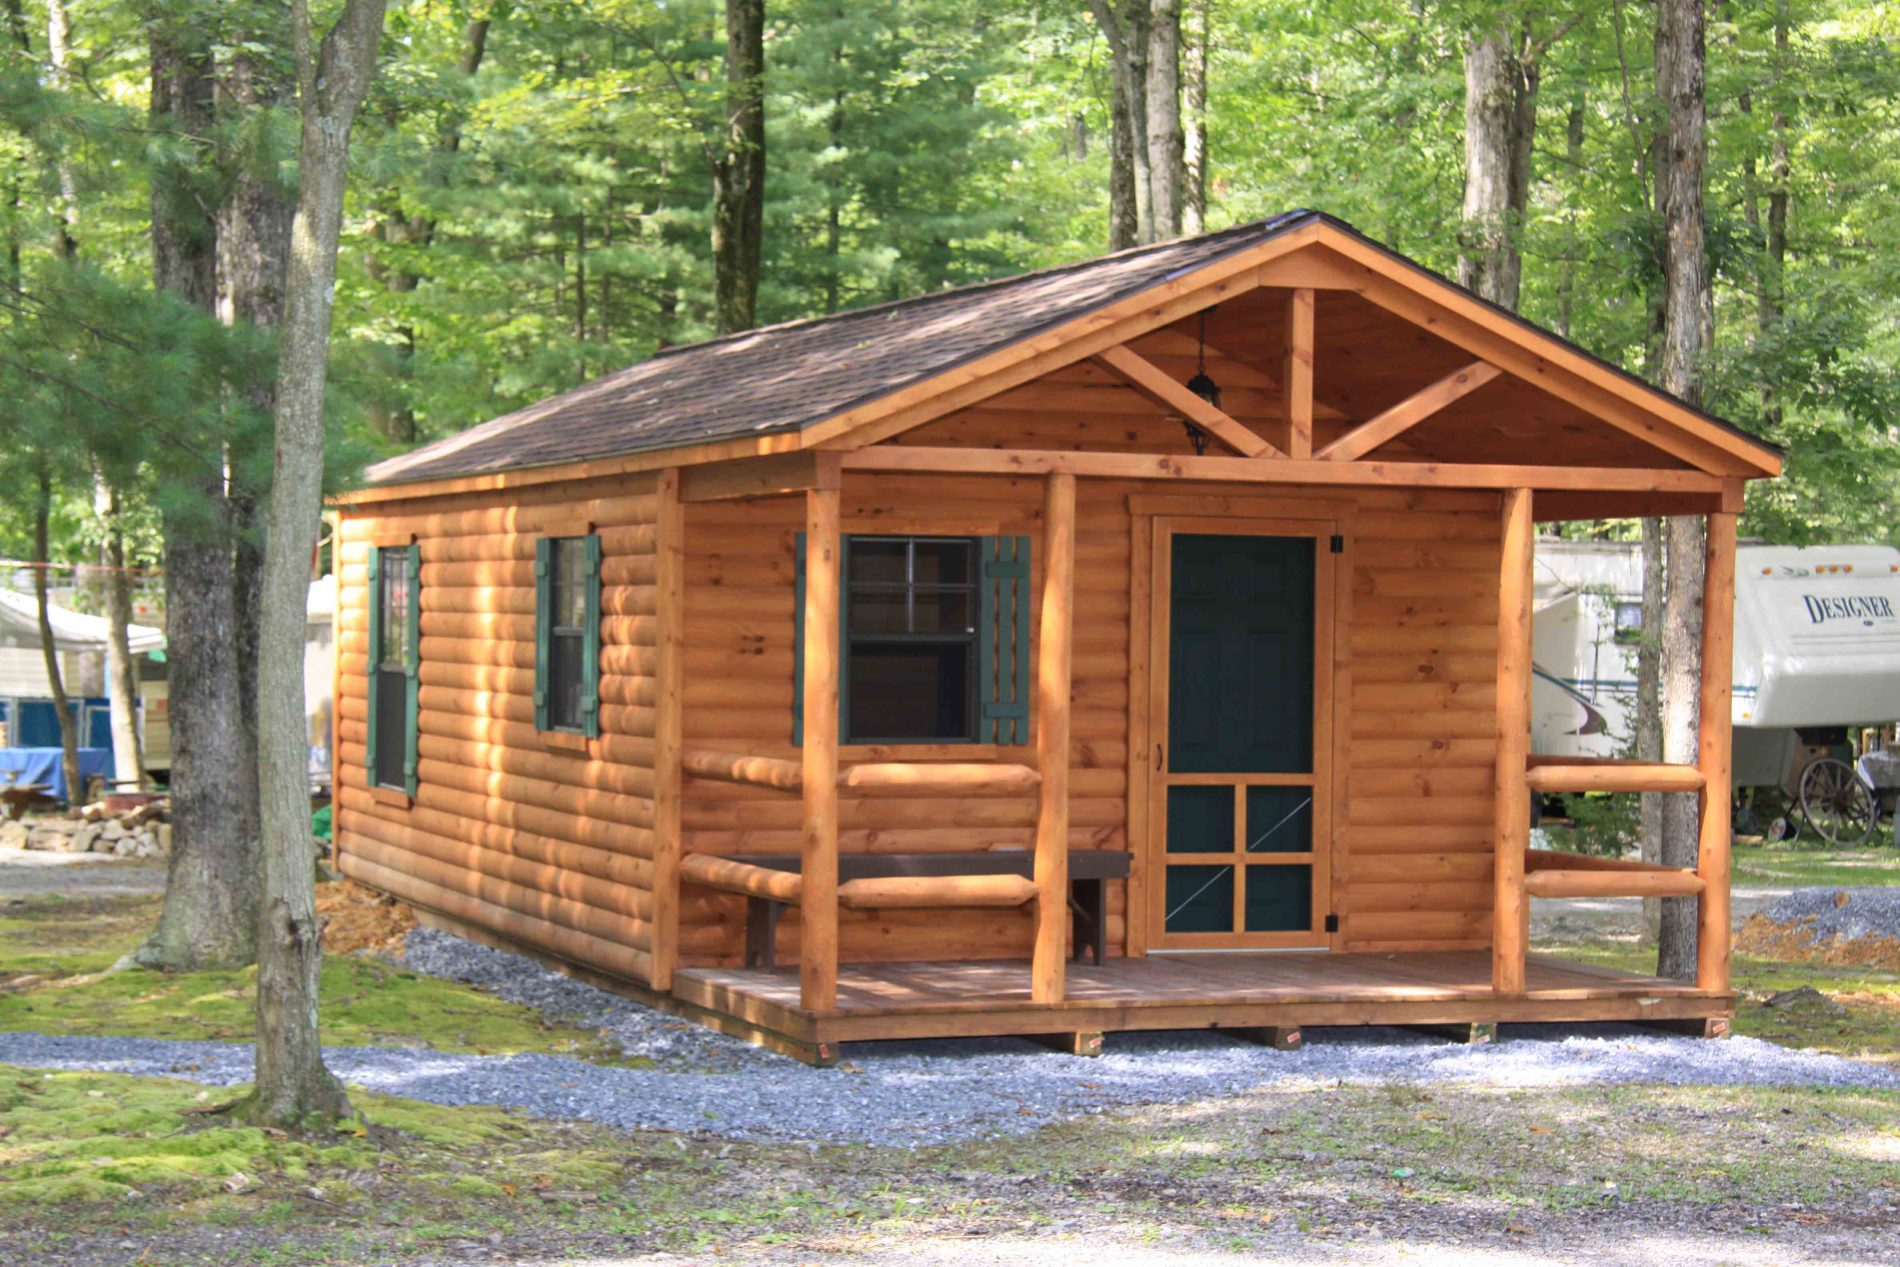 kits log storage cabin davis shed in building cabins arkansas x sale tiny pa homes sheds buildings for portable arkansasog